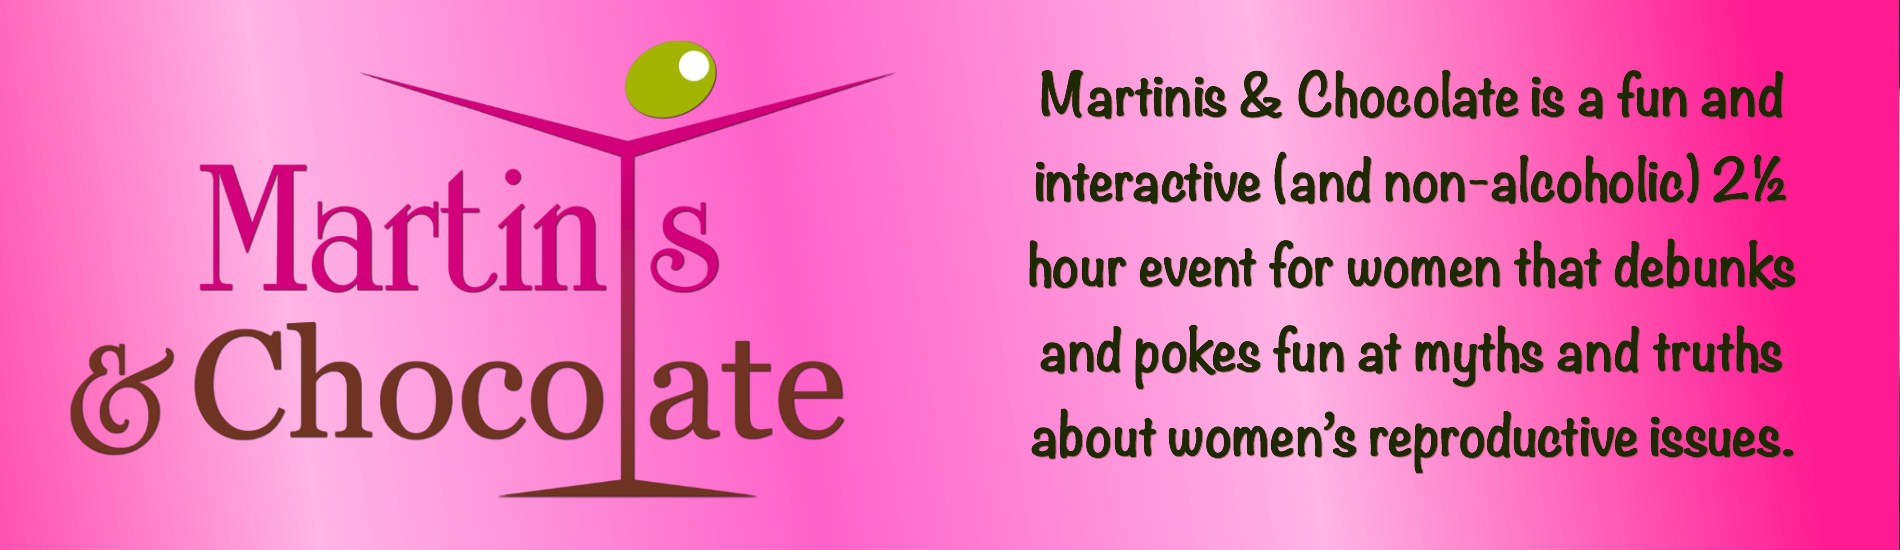 birds bees connection martinis chocolate